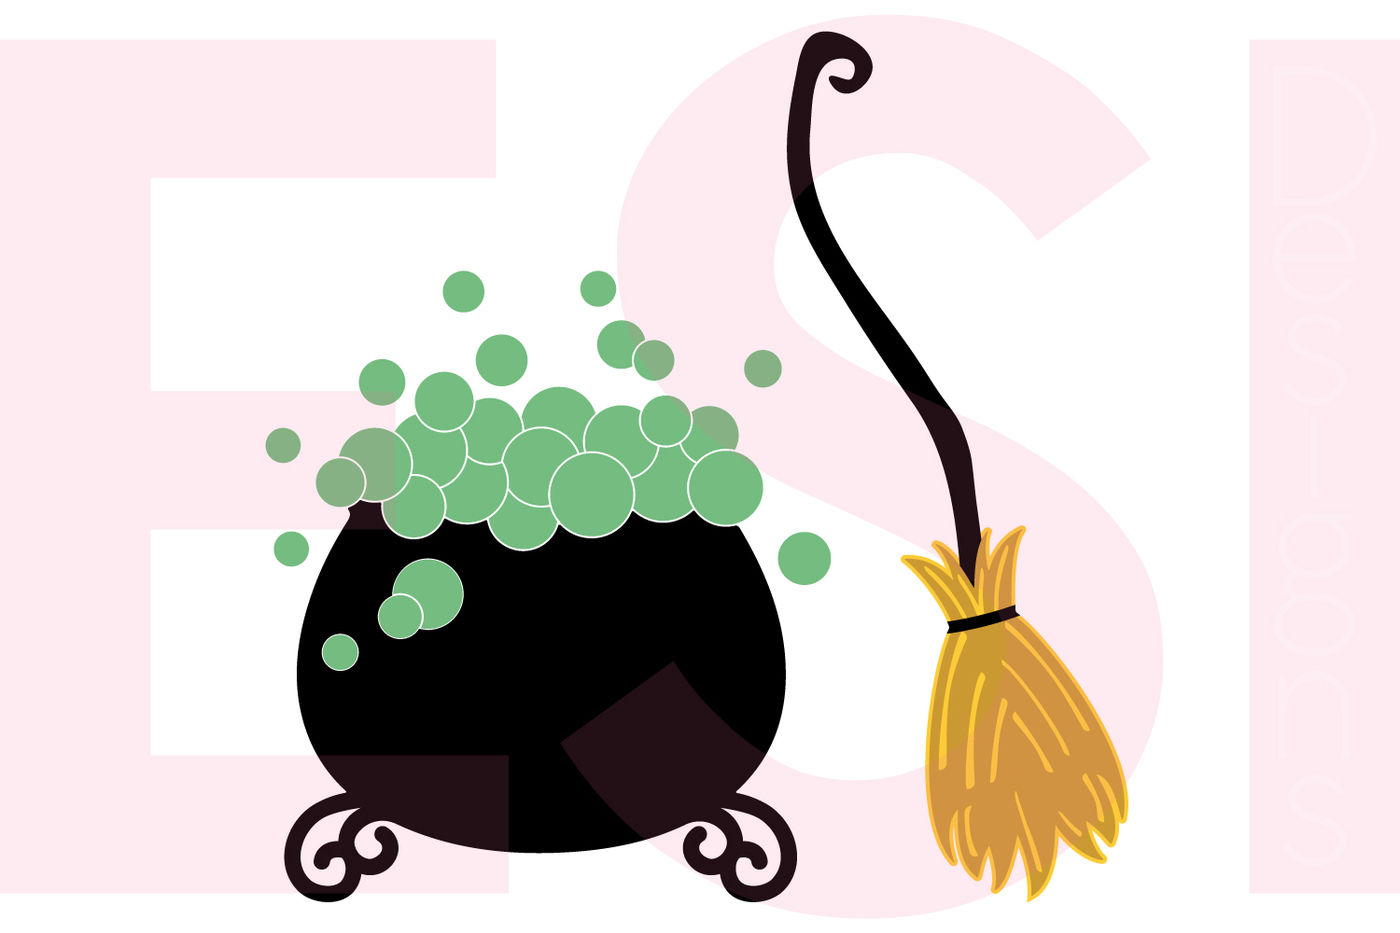 Witches Cauldron And Broom Design Set Svg Dxf Eps Cutting Files By Esi Designs Thehungryjpeg Com